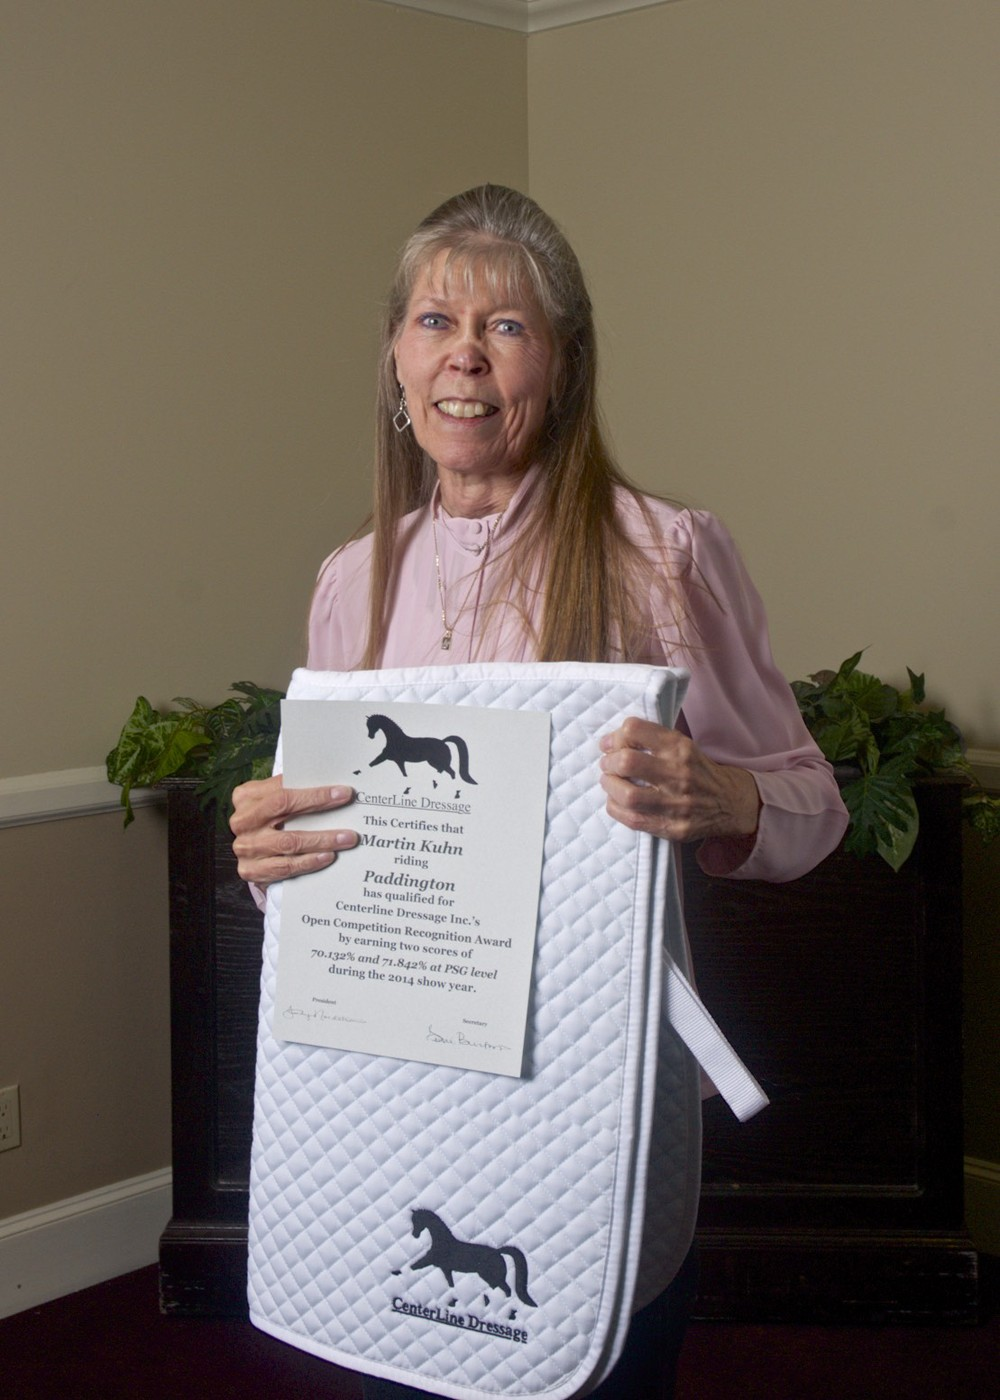 Leslie Burket with one of her awards